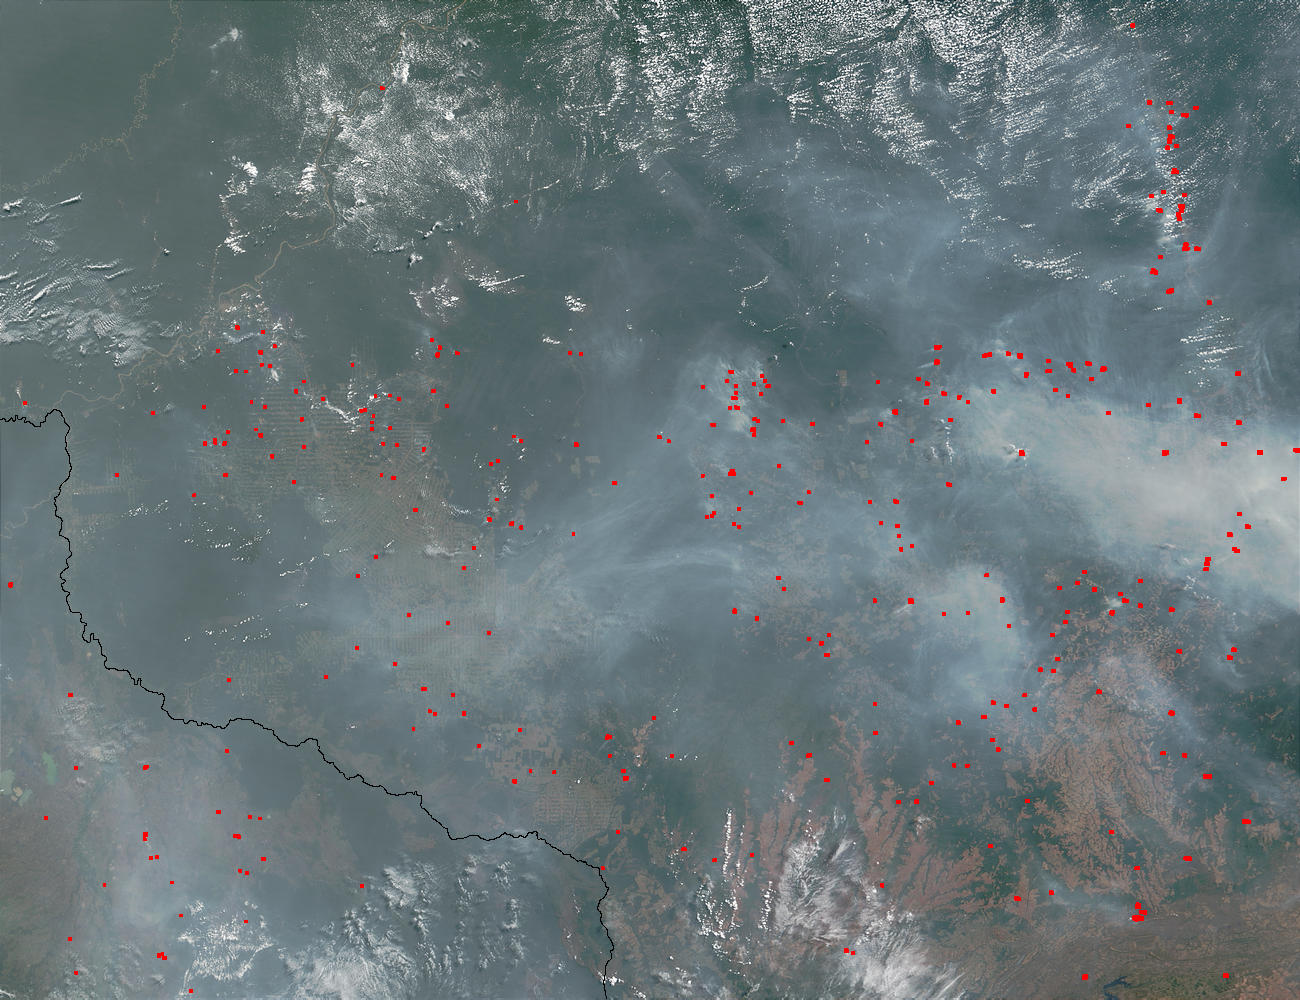 Fires and smoke in Mato Grosso and Rondonia, Brazil - related image preview